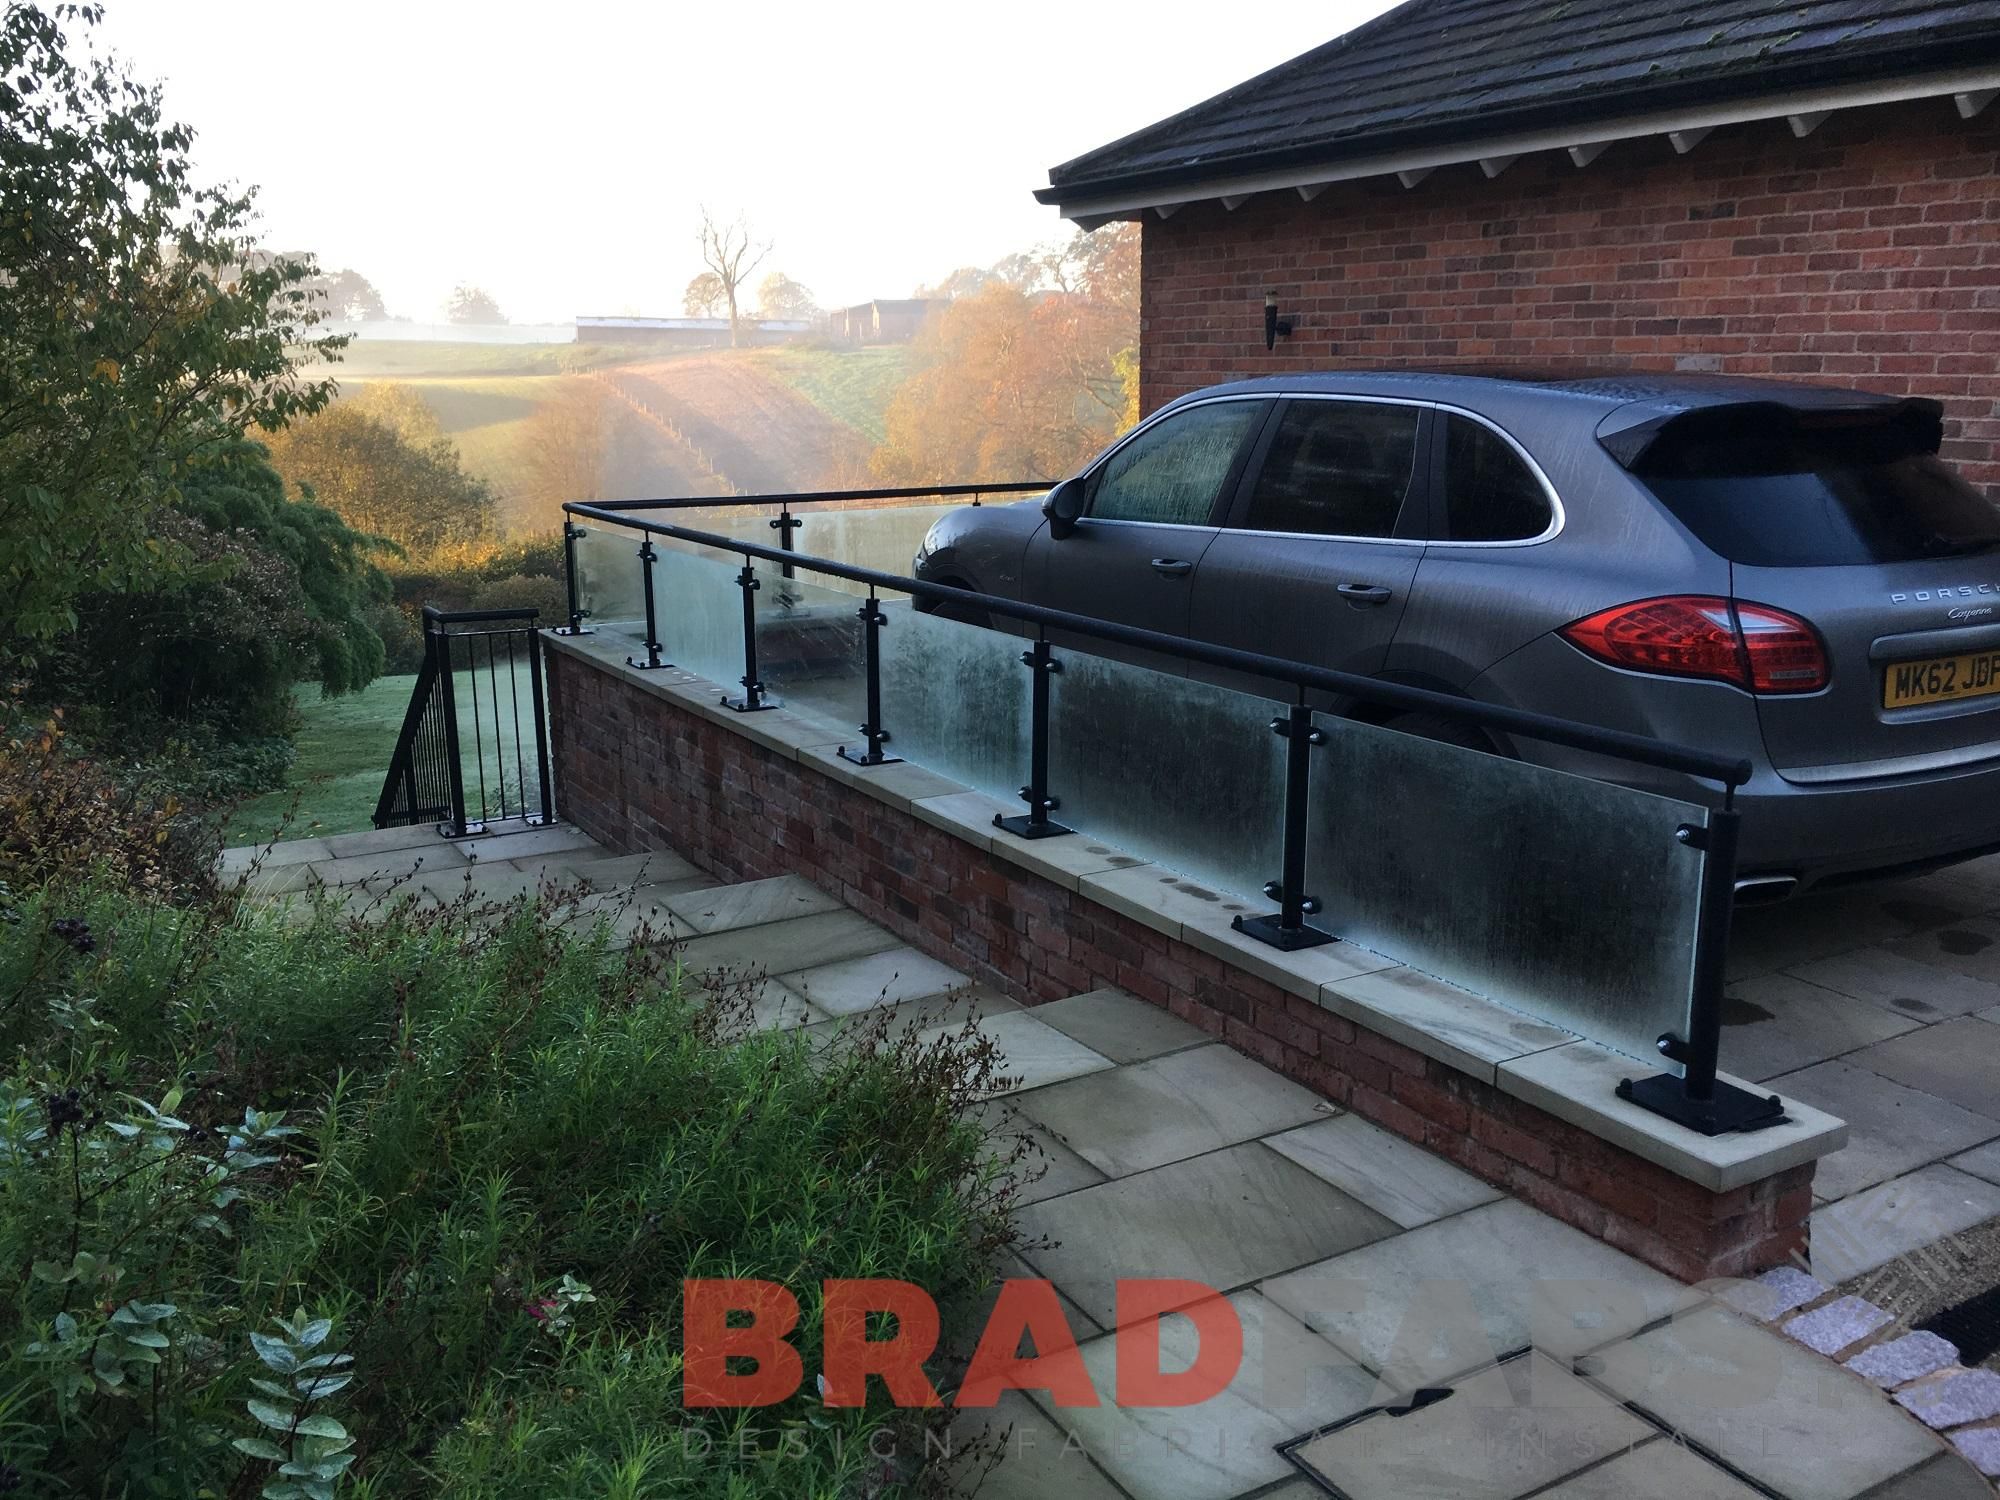 mild steel, galvanised, powder coated glass infill panels and vertical bar balustrade outdoor home improvements by Bradfabs